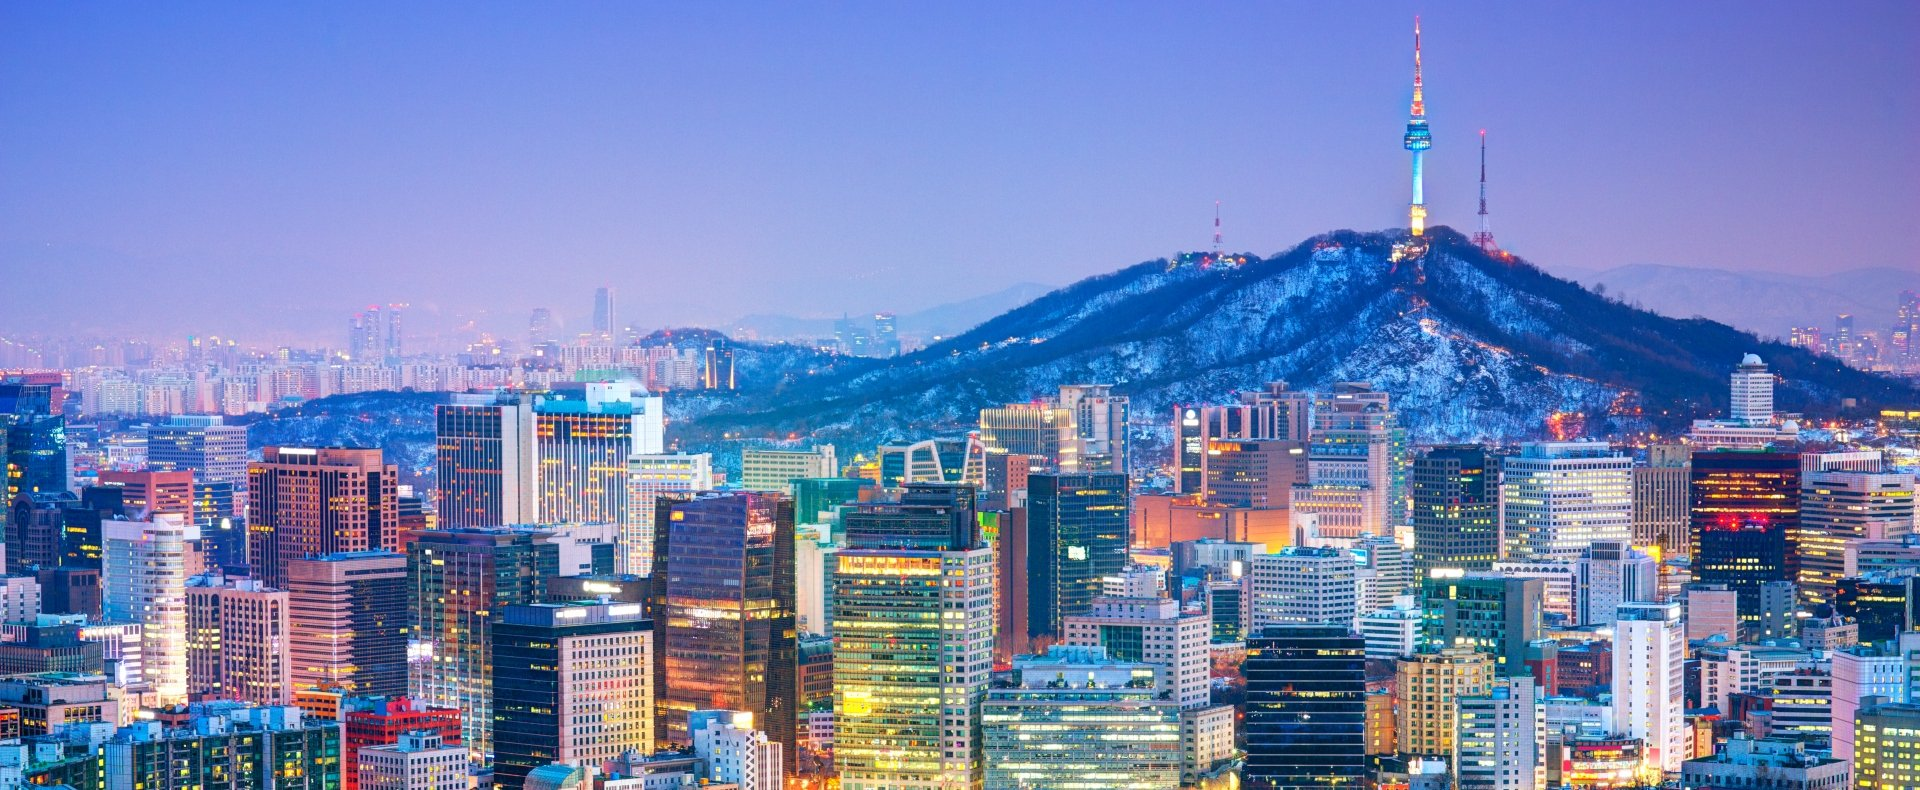 City scape, South Korea